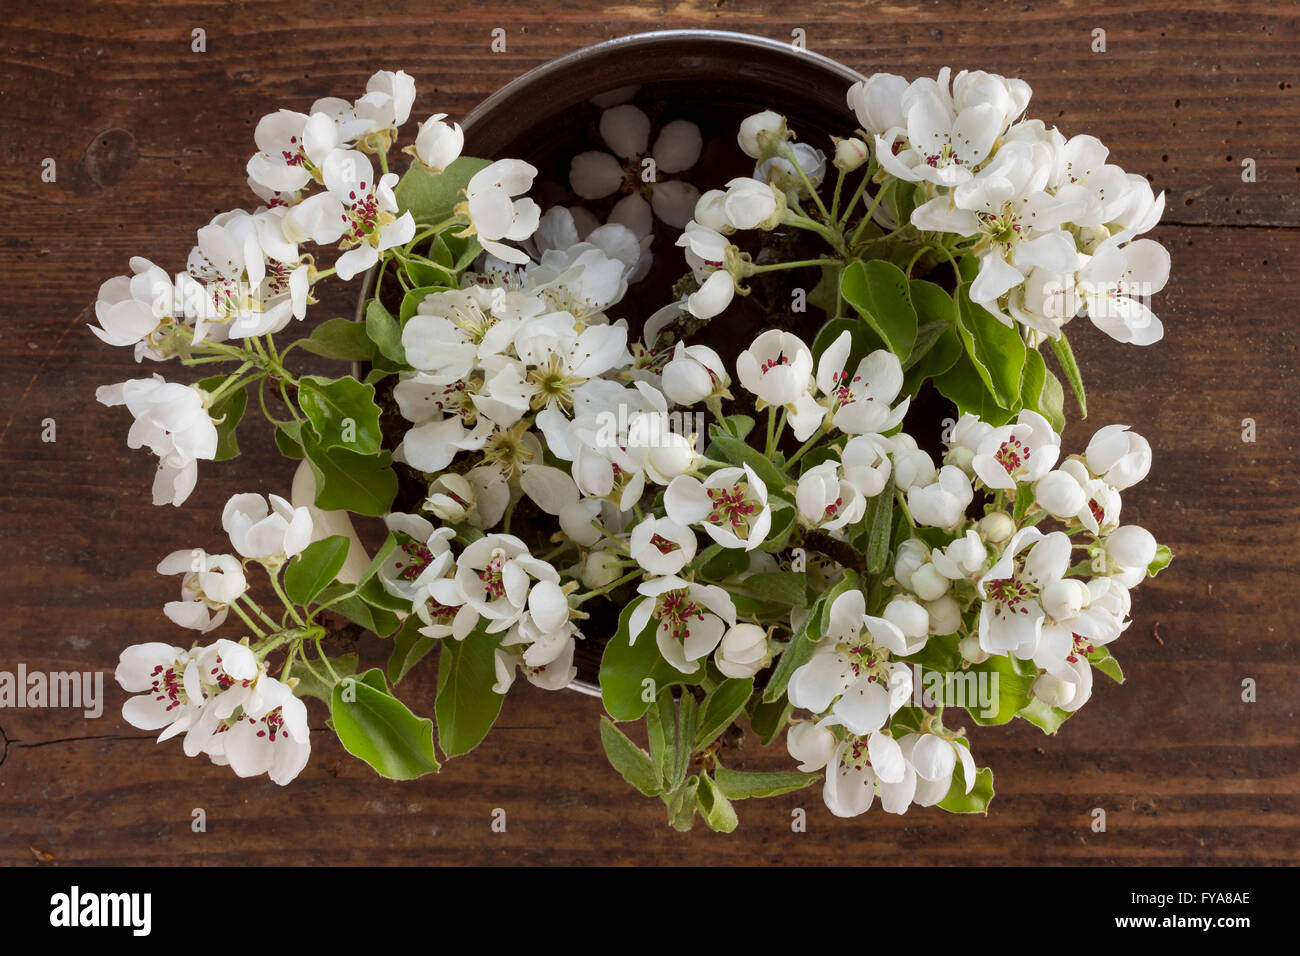 Fresh Branches Of An Apple Tree With White Flowers And Fresh Green